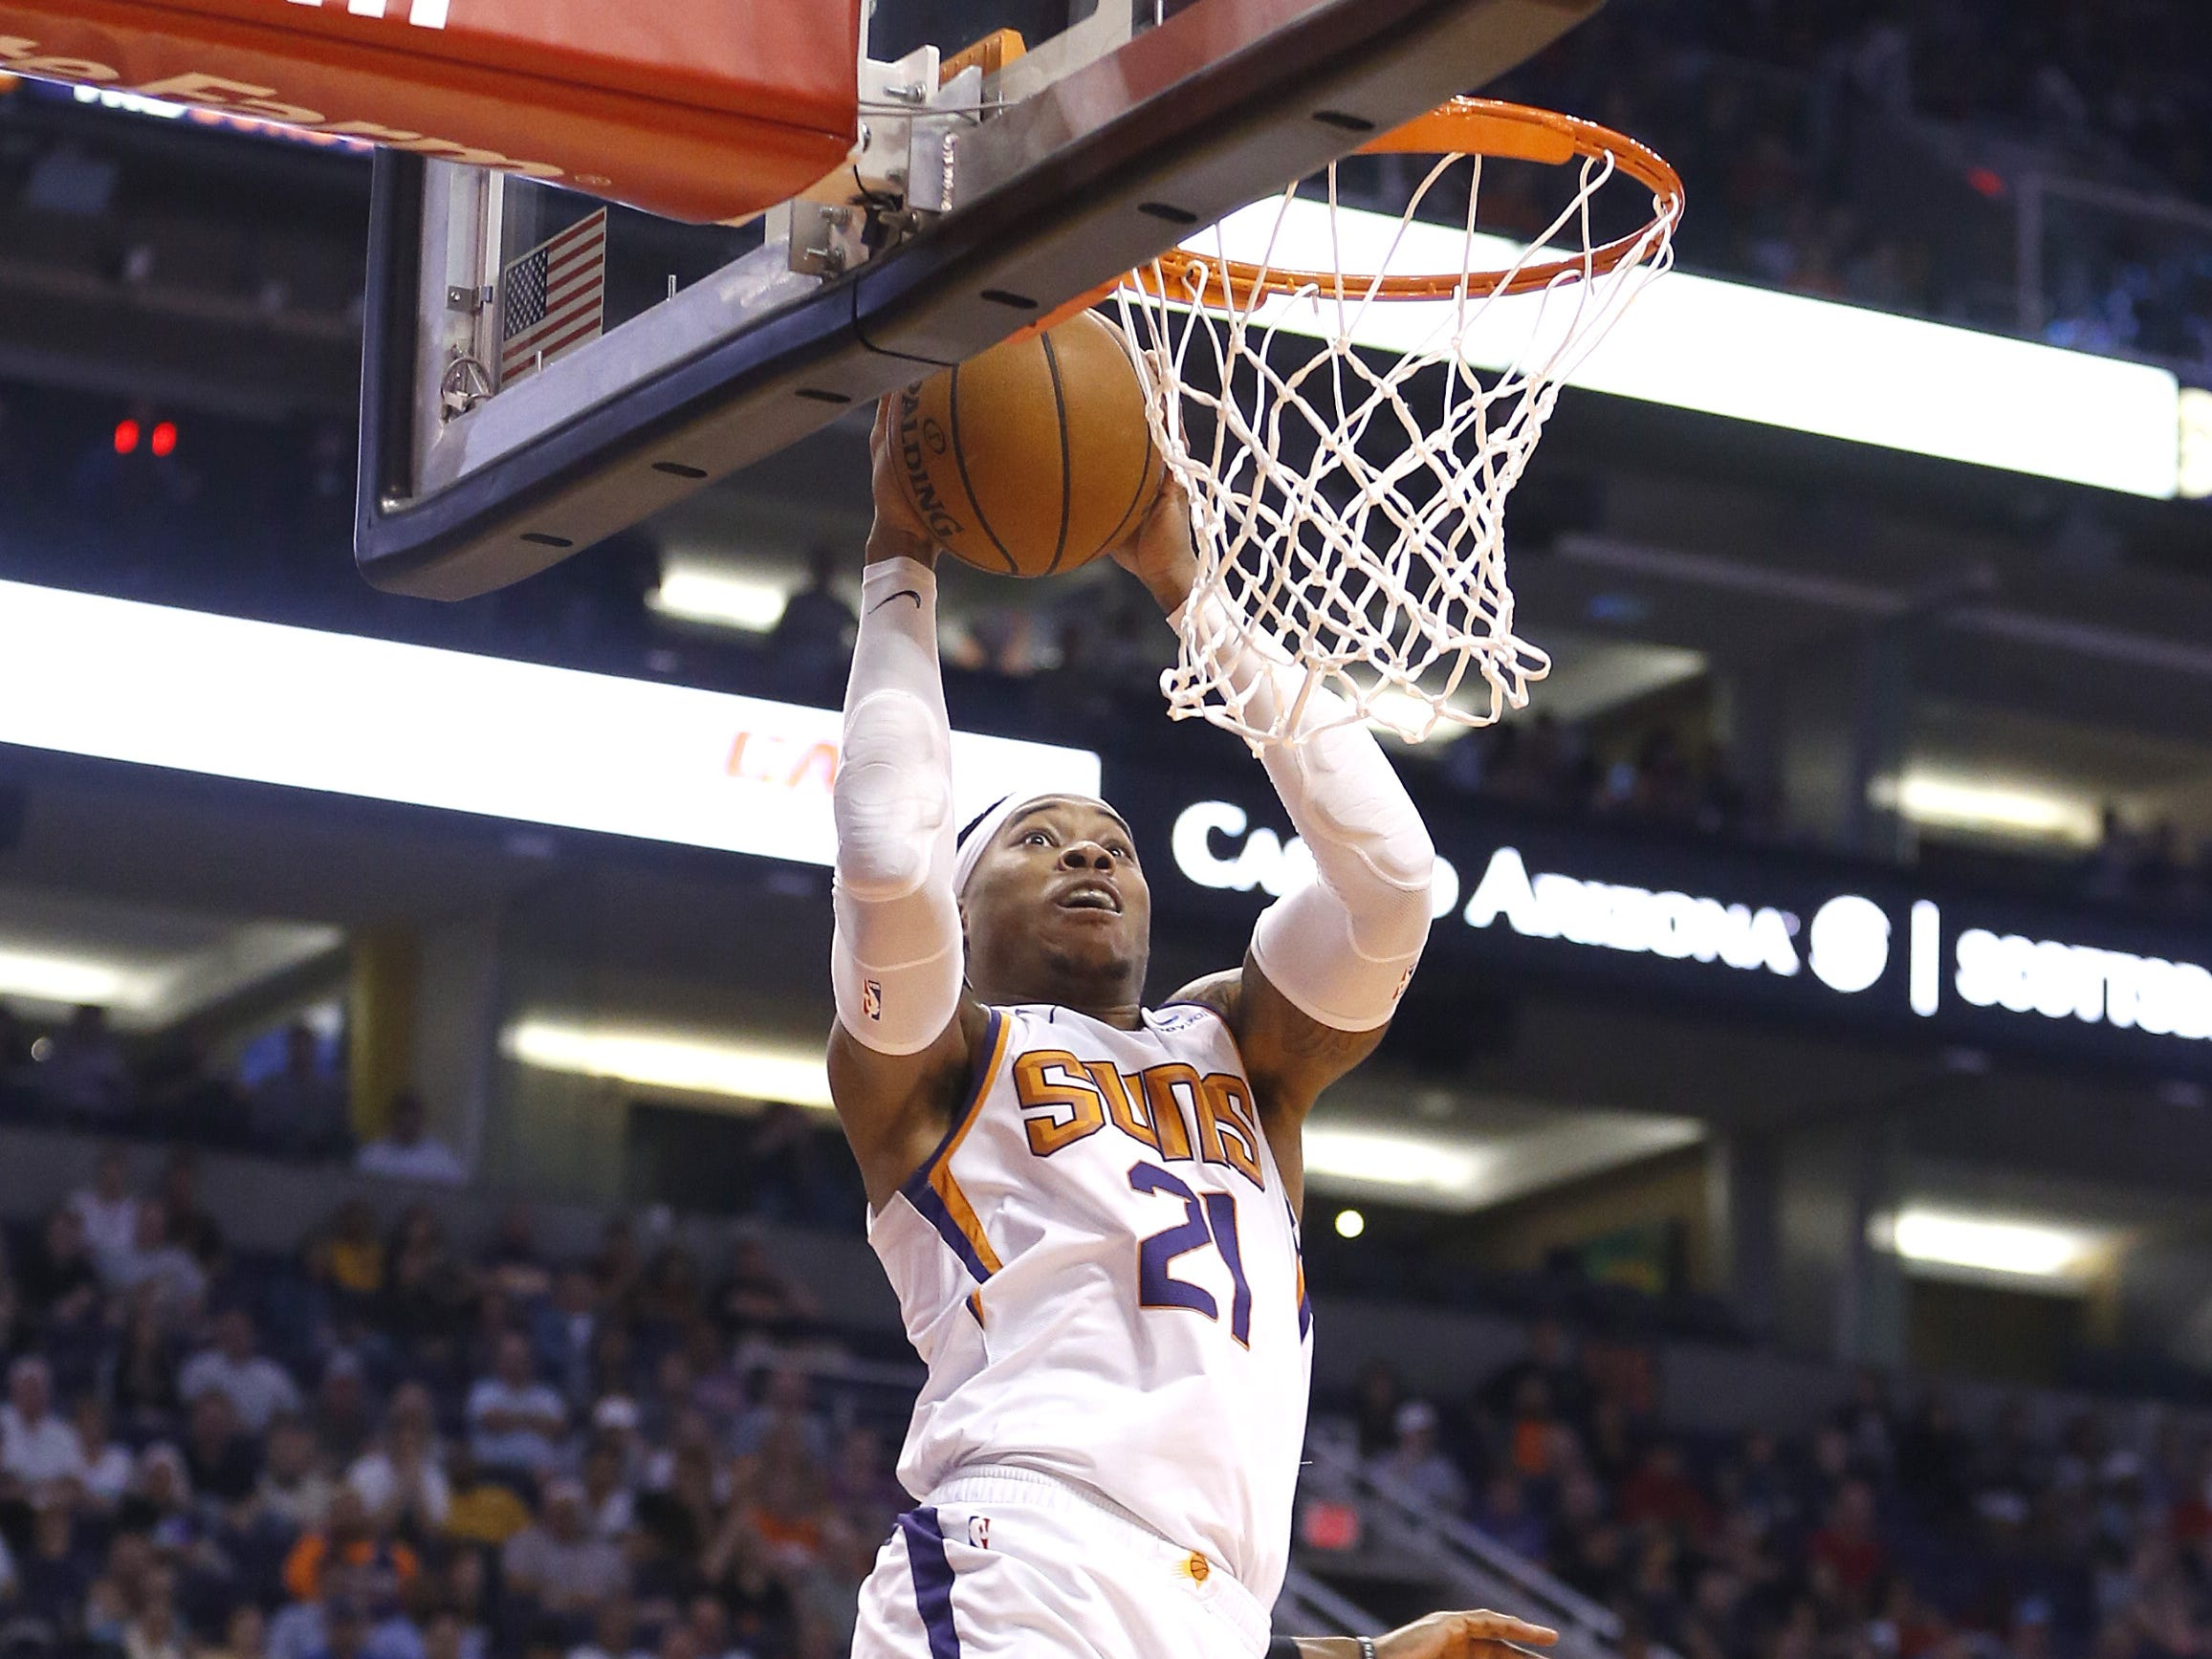 Suns' Richaun Holmes (21) catches an alleyoop and makes a layup and draws a foul against Cavaliers' David Nwaba (12) during the first half at Talking Stick Resort Arena in Phoenix, Ariz. on April 1, 2019.